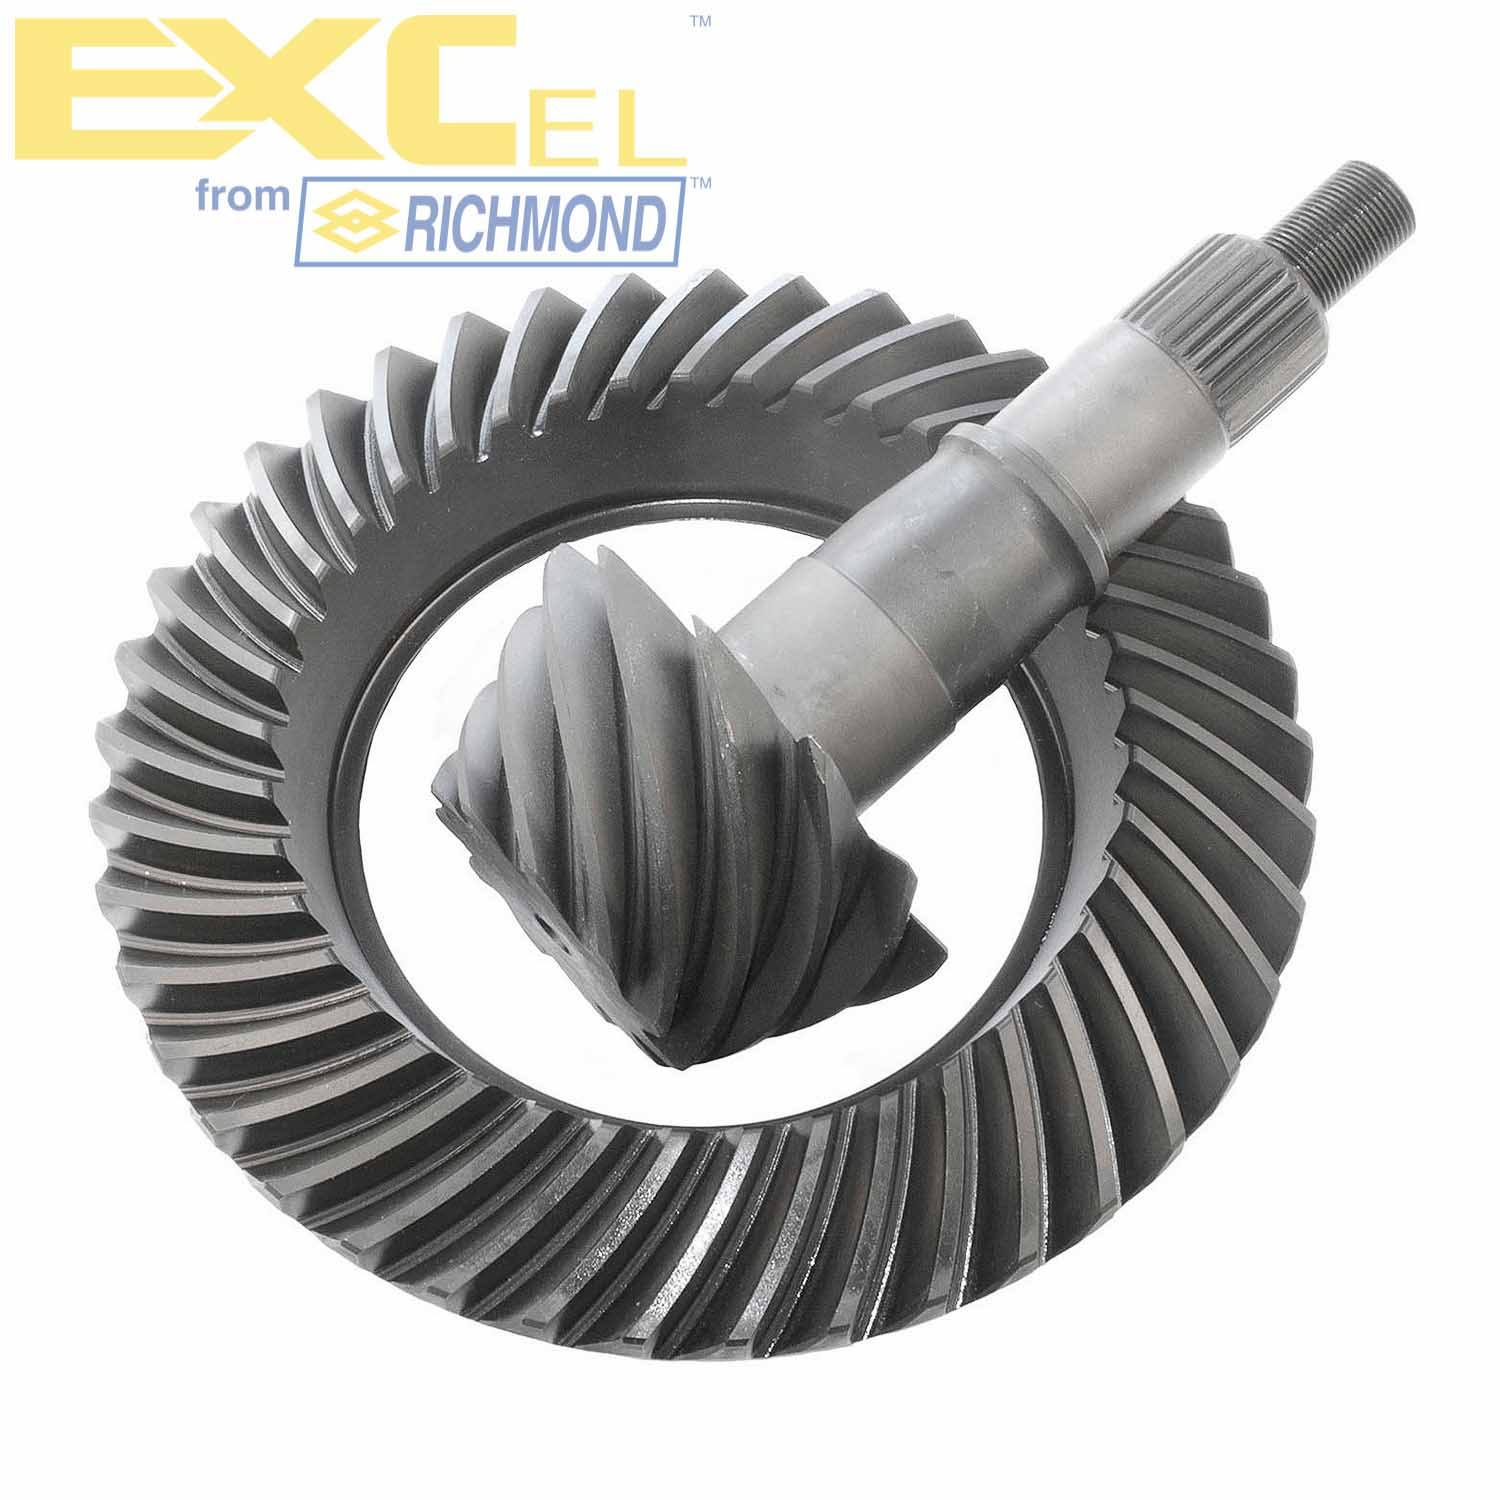 Ford 8.8 inch 10 BoltRichmond Excel Ring and Pinion Gear Set